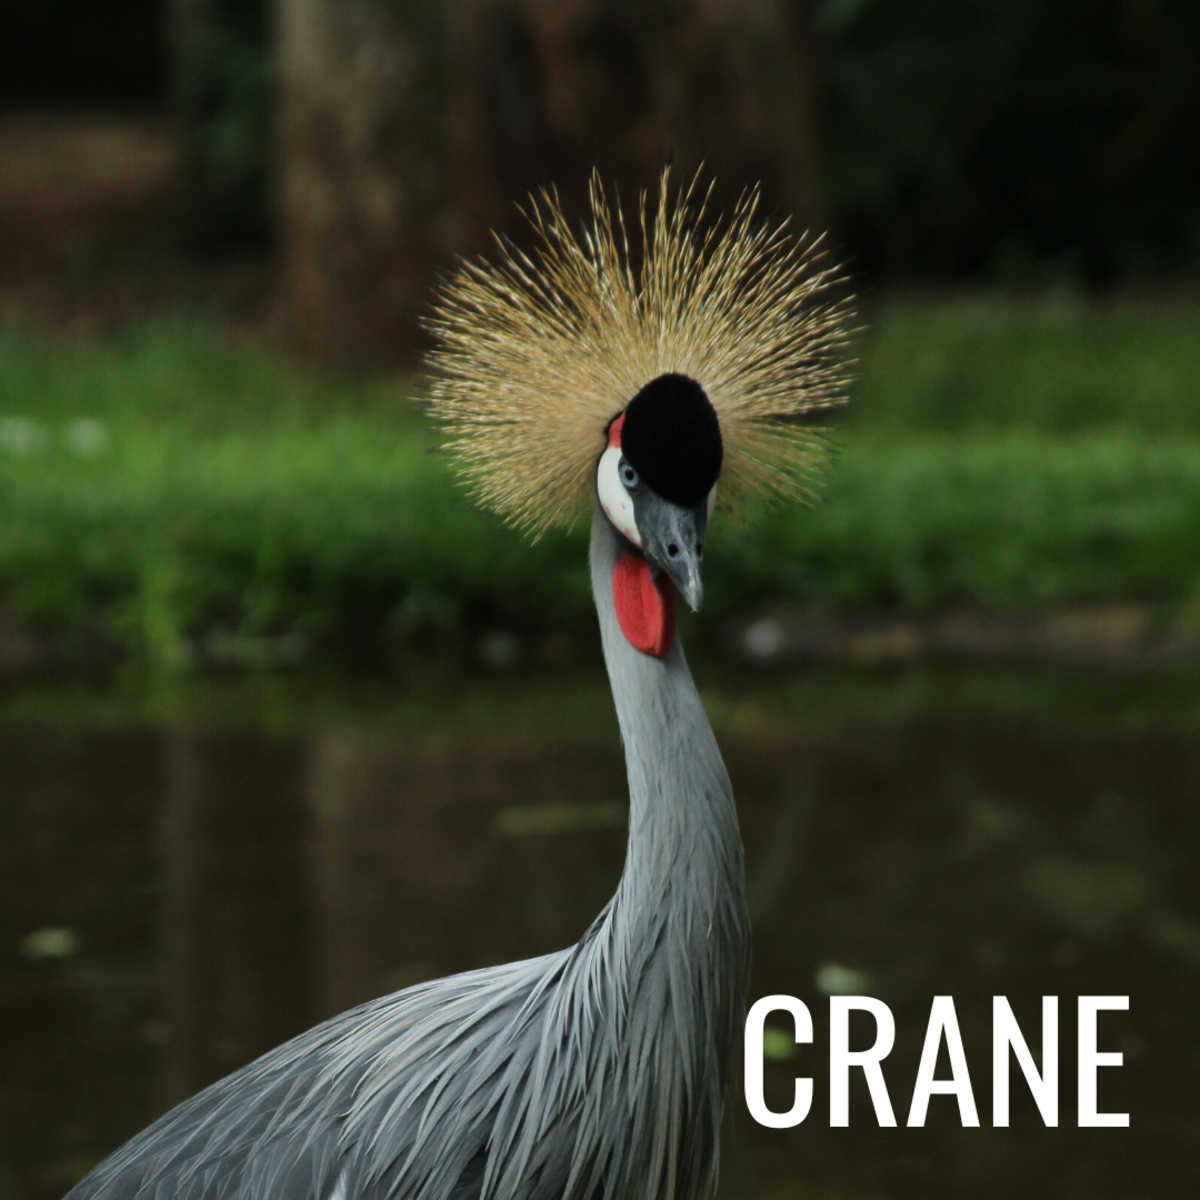 Crane are known for their exquisite mating dance.